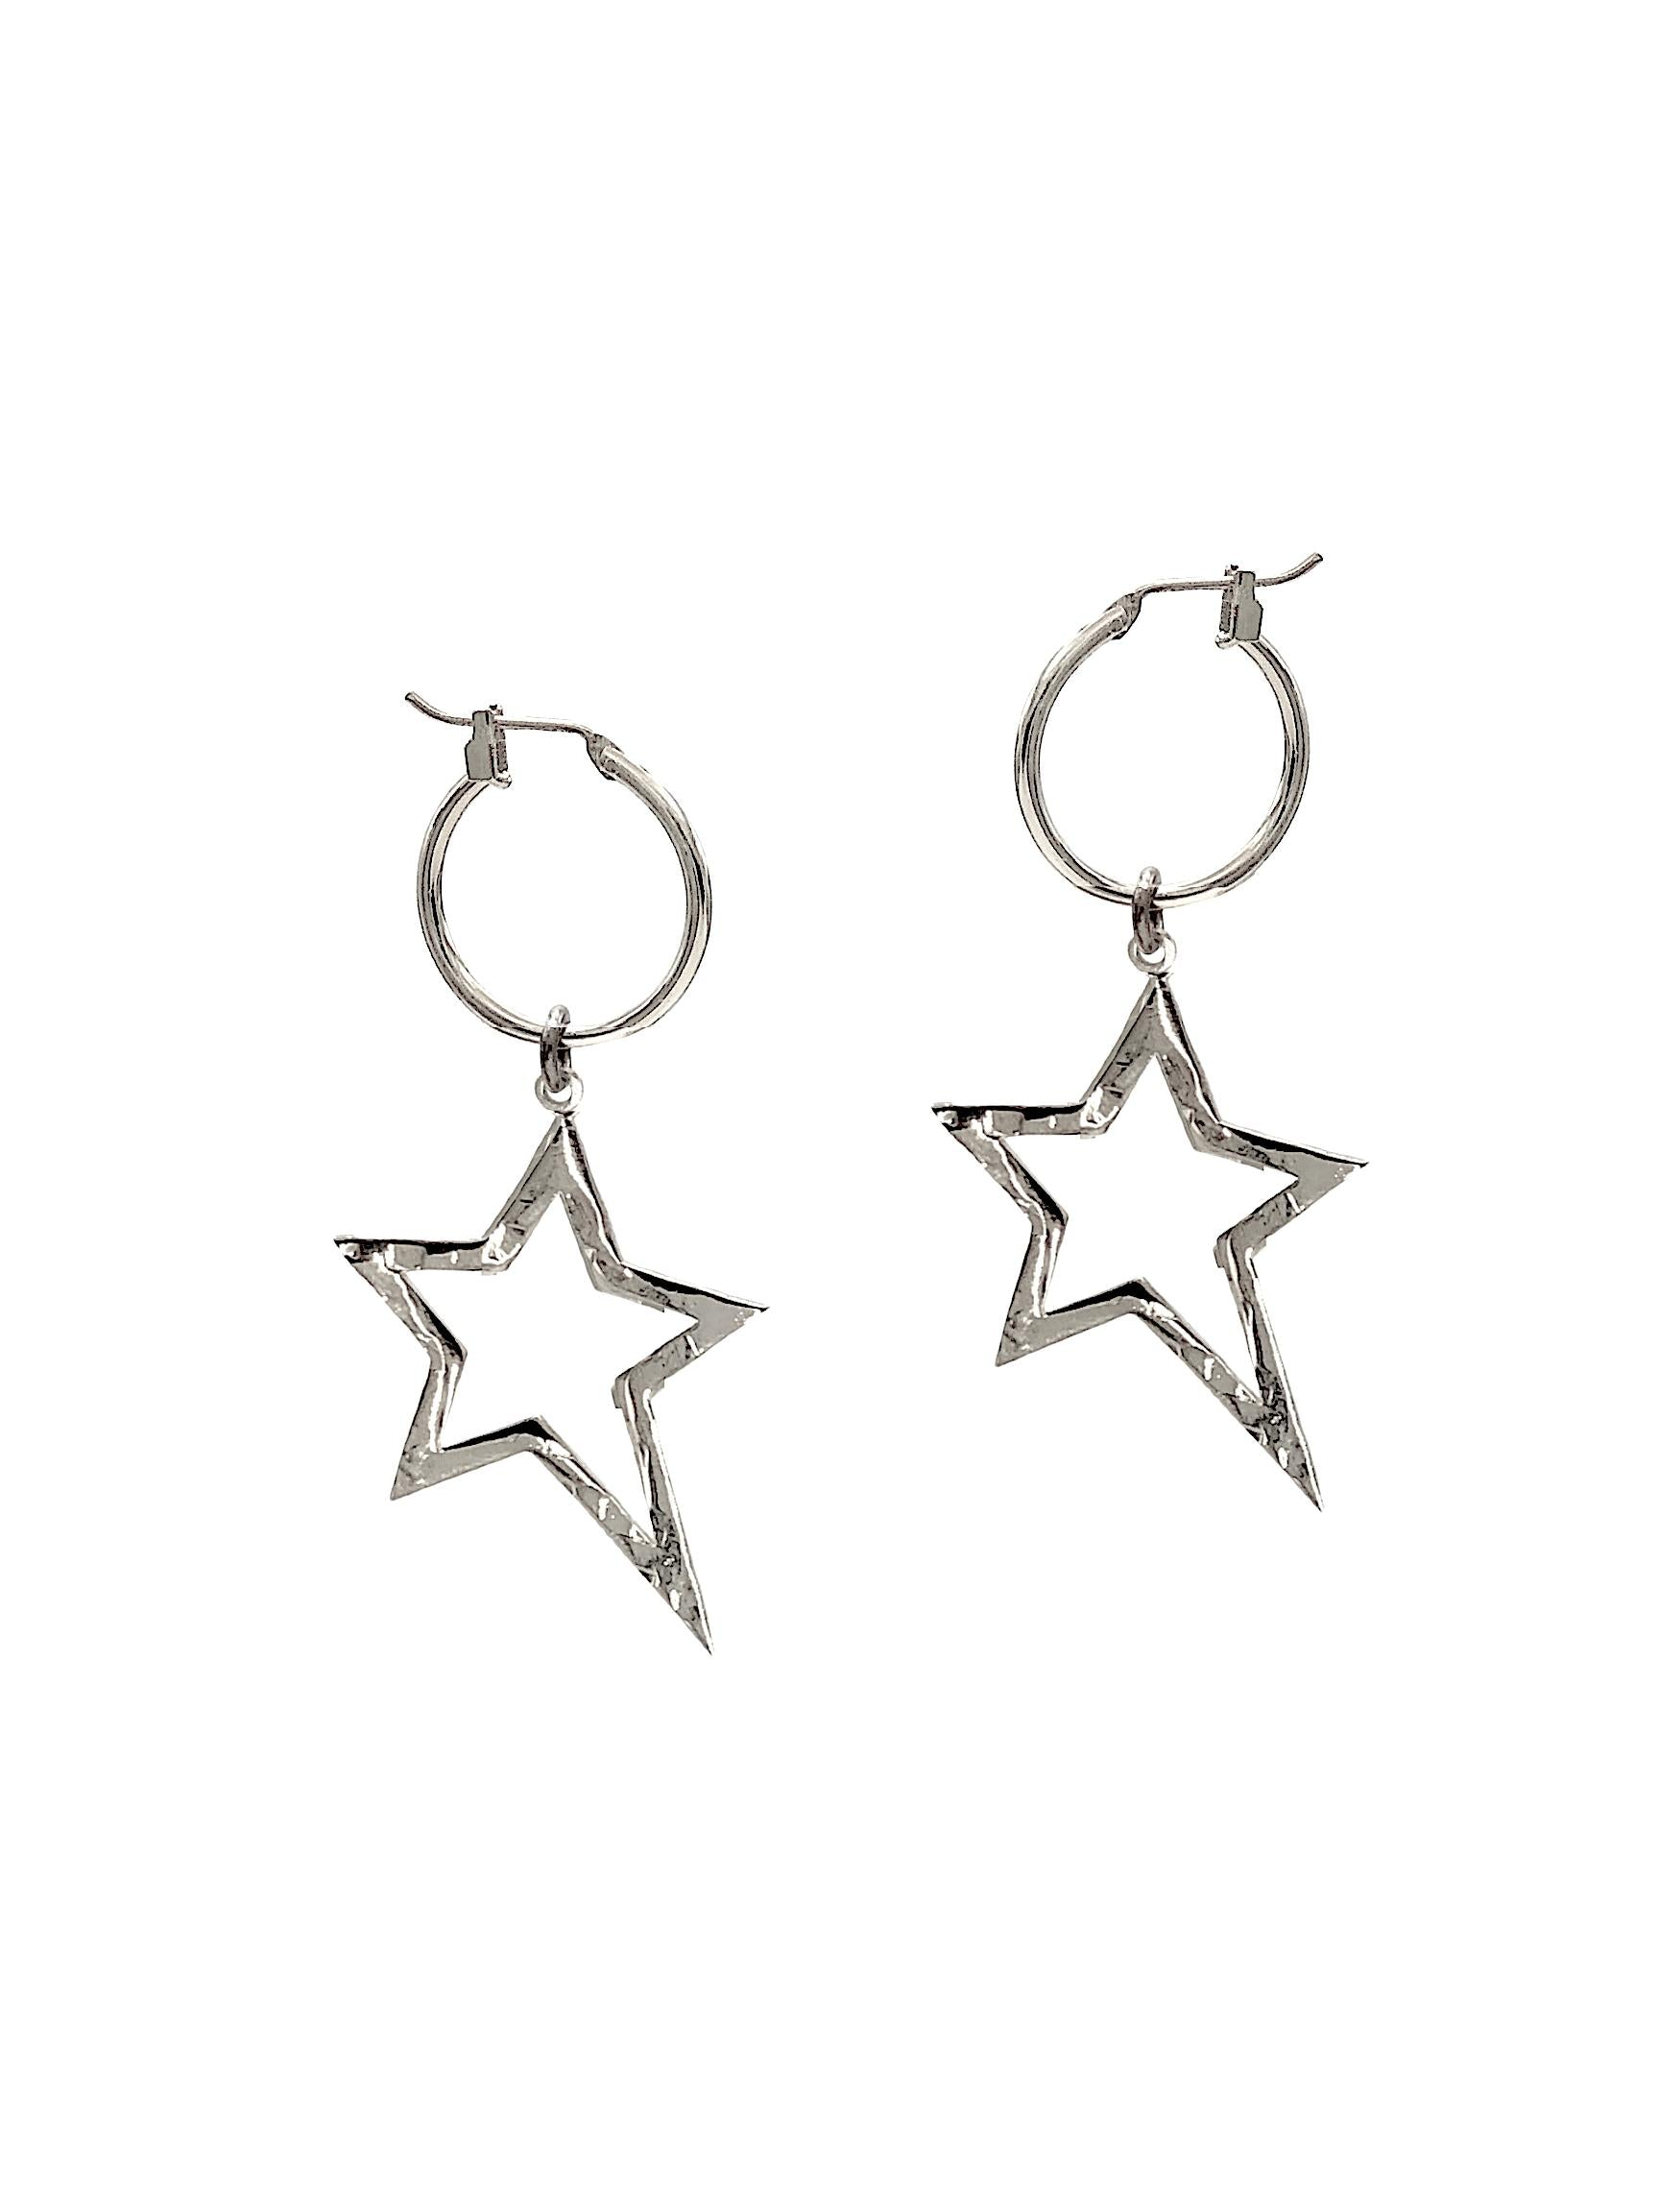 Silver Shooting Star Dust Hoop Earrings-Earrings-JAREDJAMIN Jewelry Online-JAREDJAMIN - Fashion Jewelry & Accessories